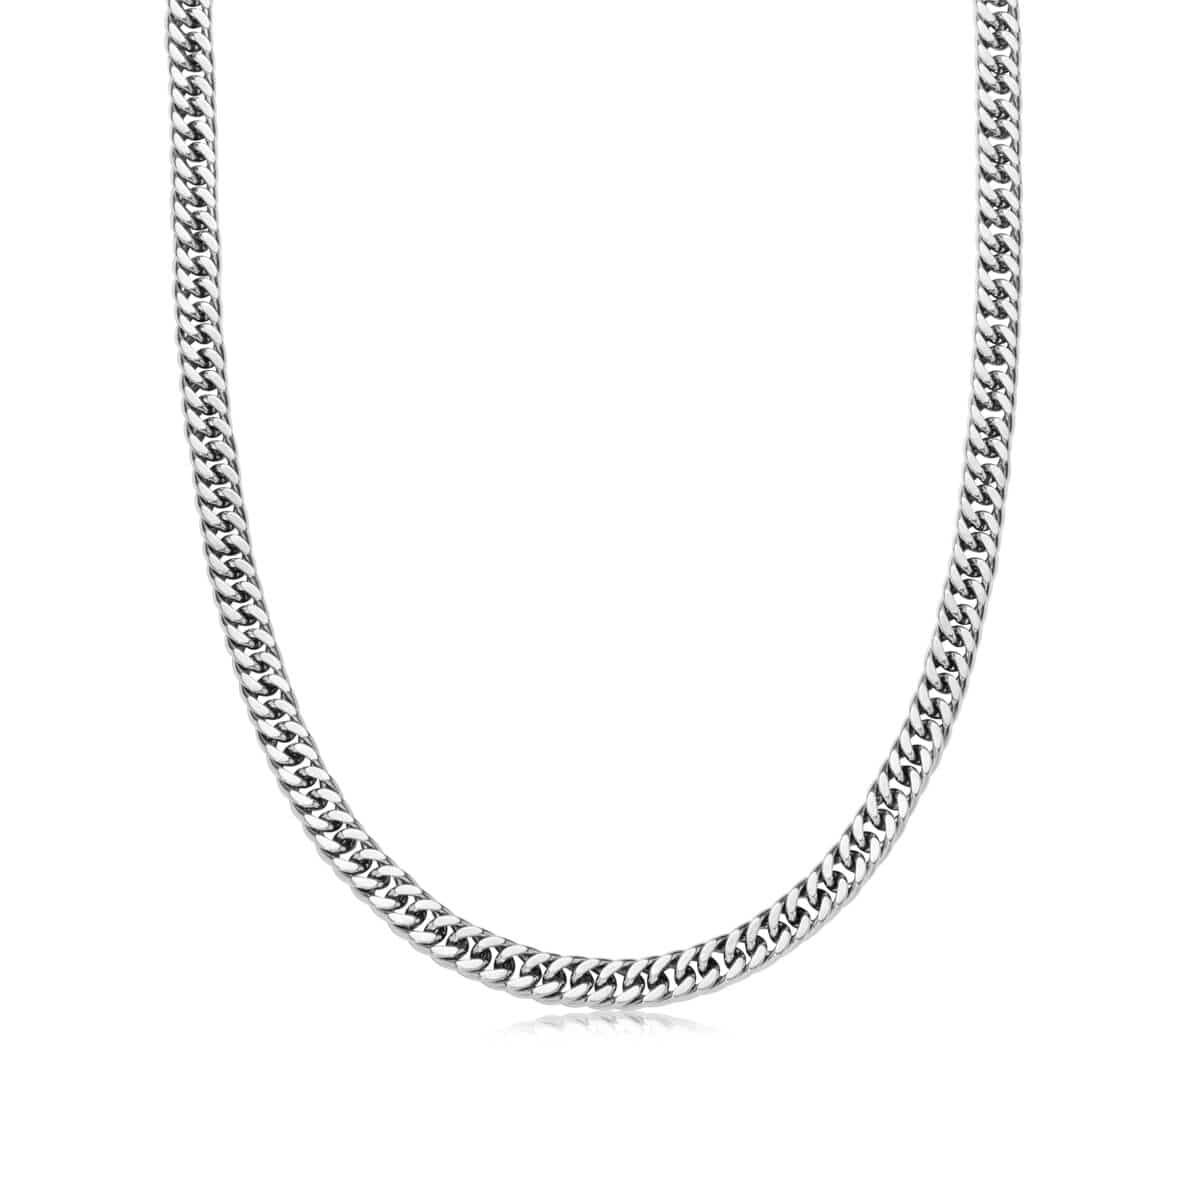 Curb Chain Necklace (Silver)